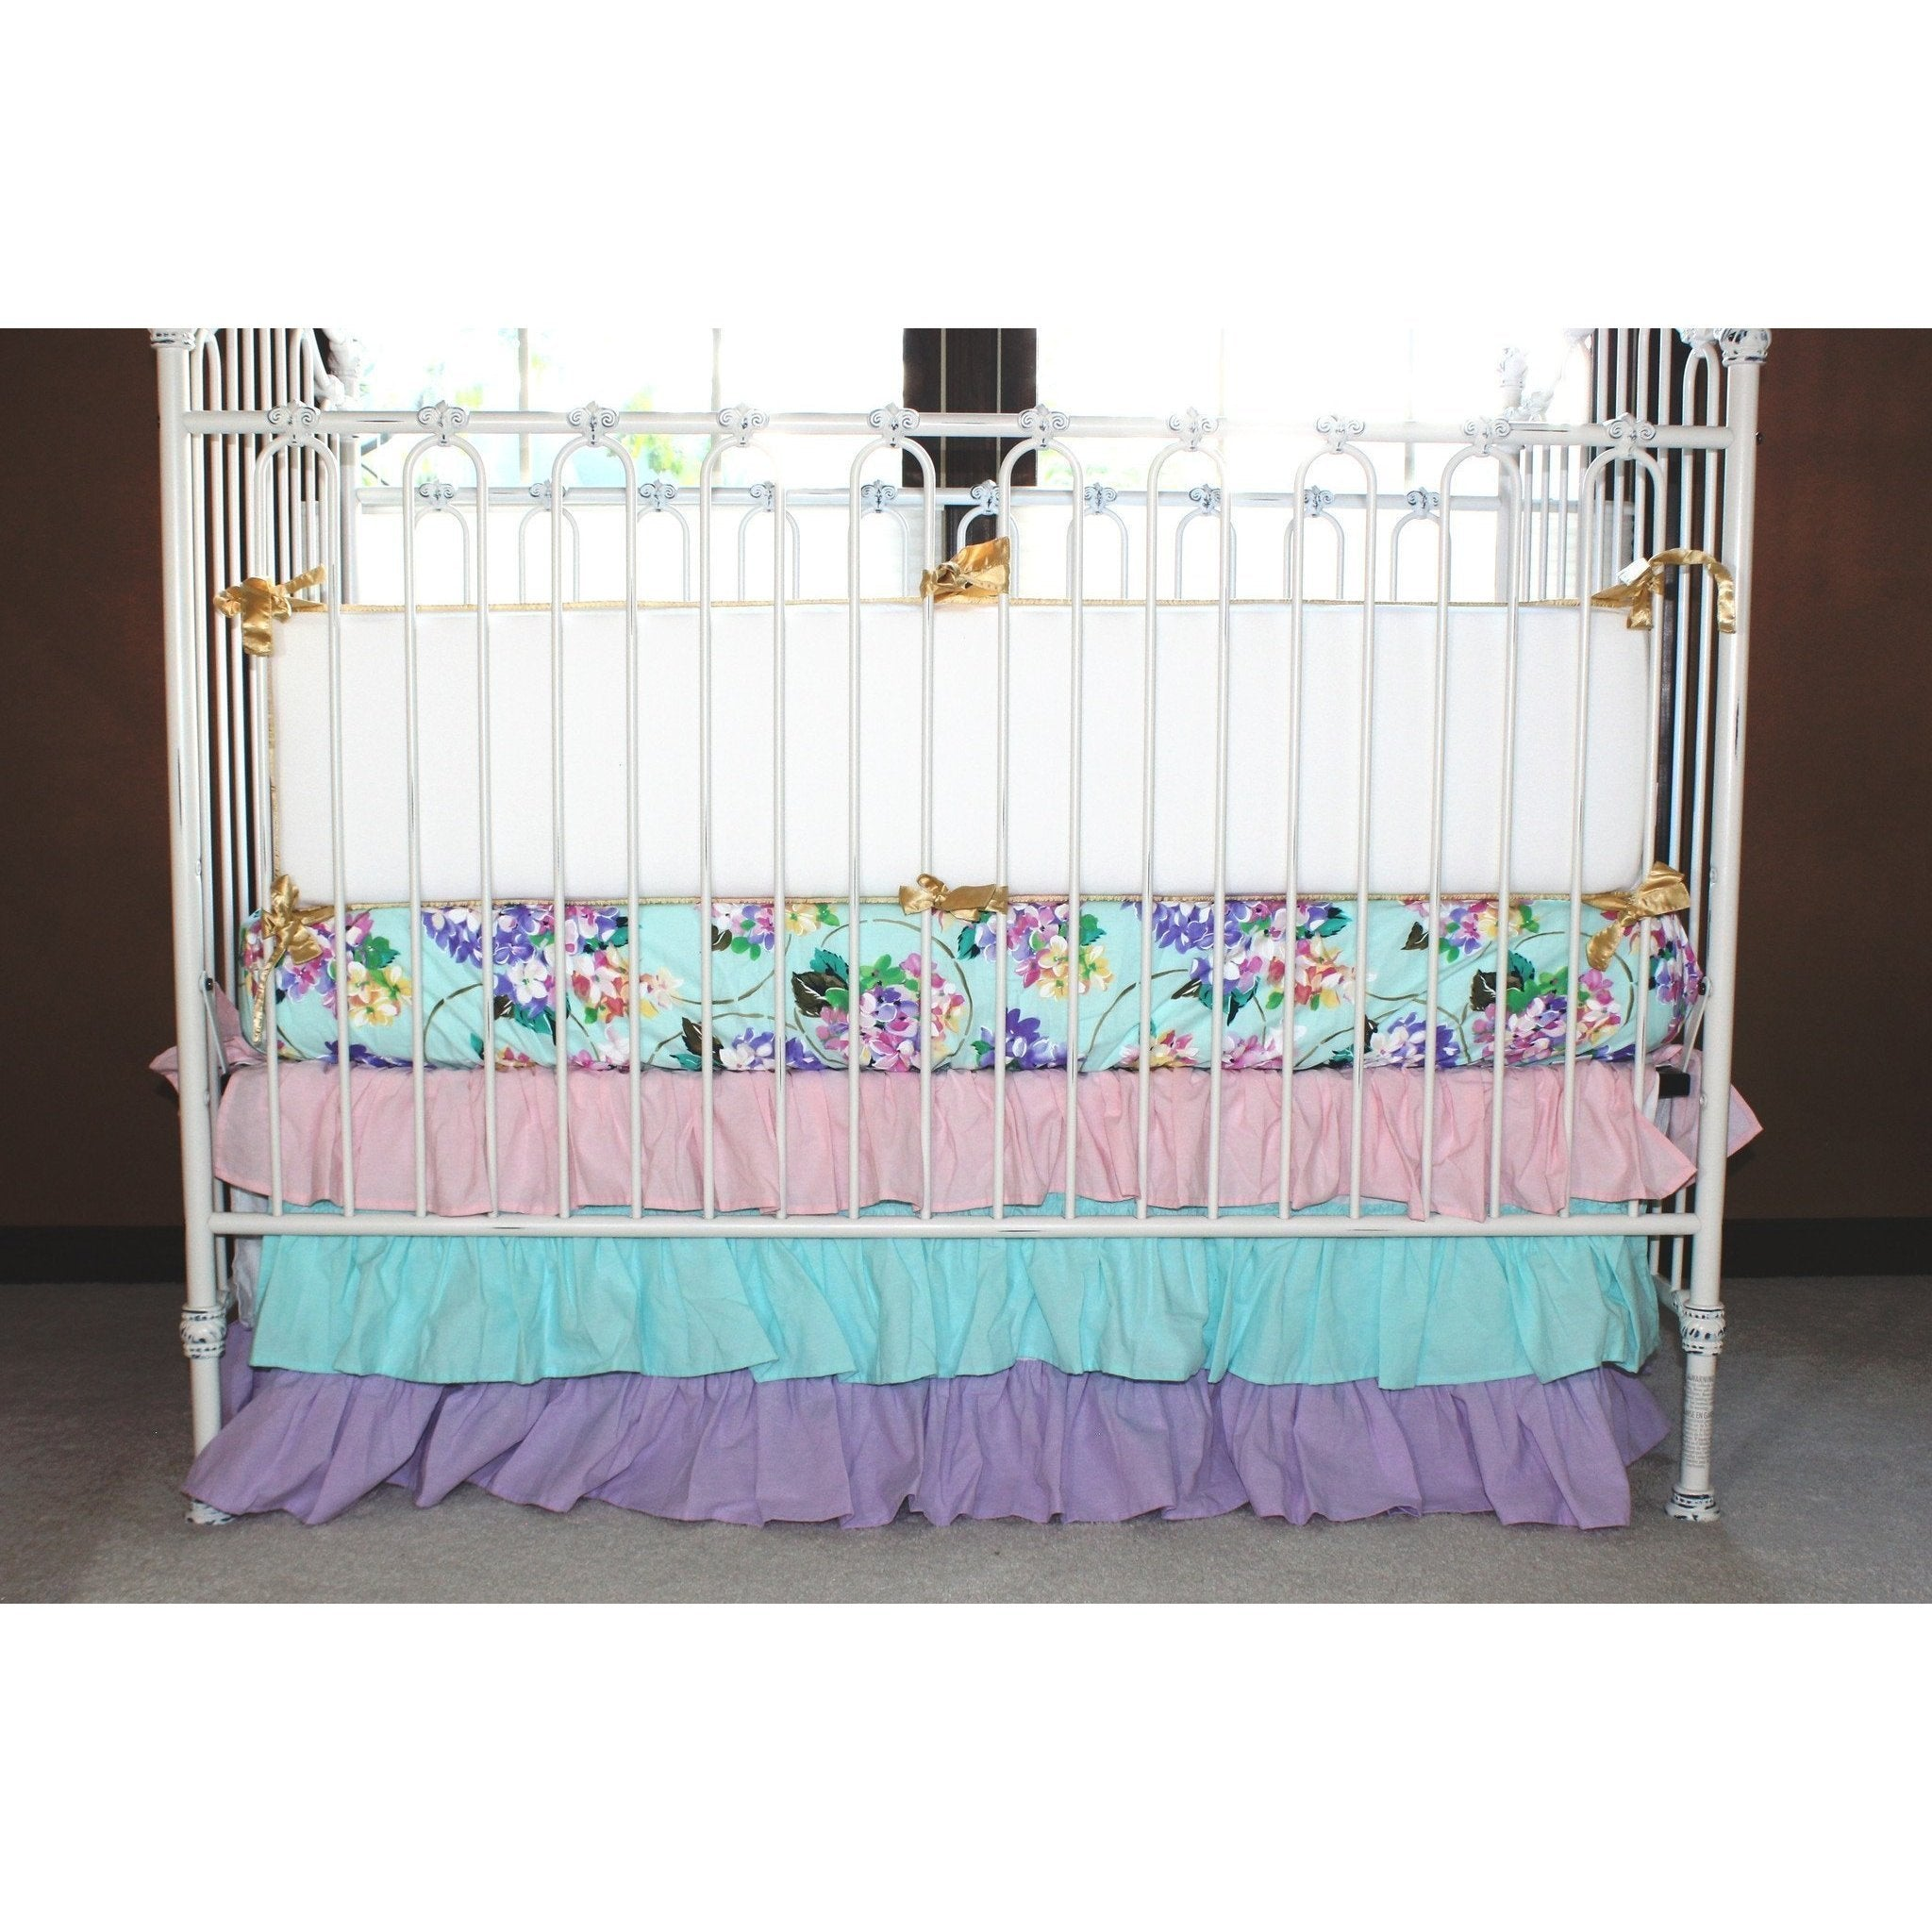 sets beige about bumperless right cribs circle what pink wooden size valance girl full designer window teal s colored white quilt chairs set cushion ideas portable of hang bedding rug pattern gold mini light lovely baby crib floral nursery fur